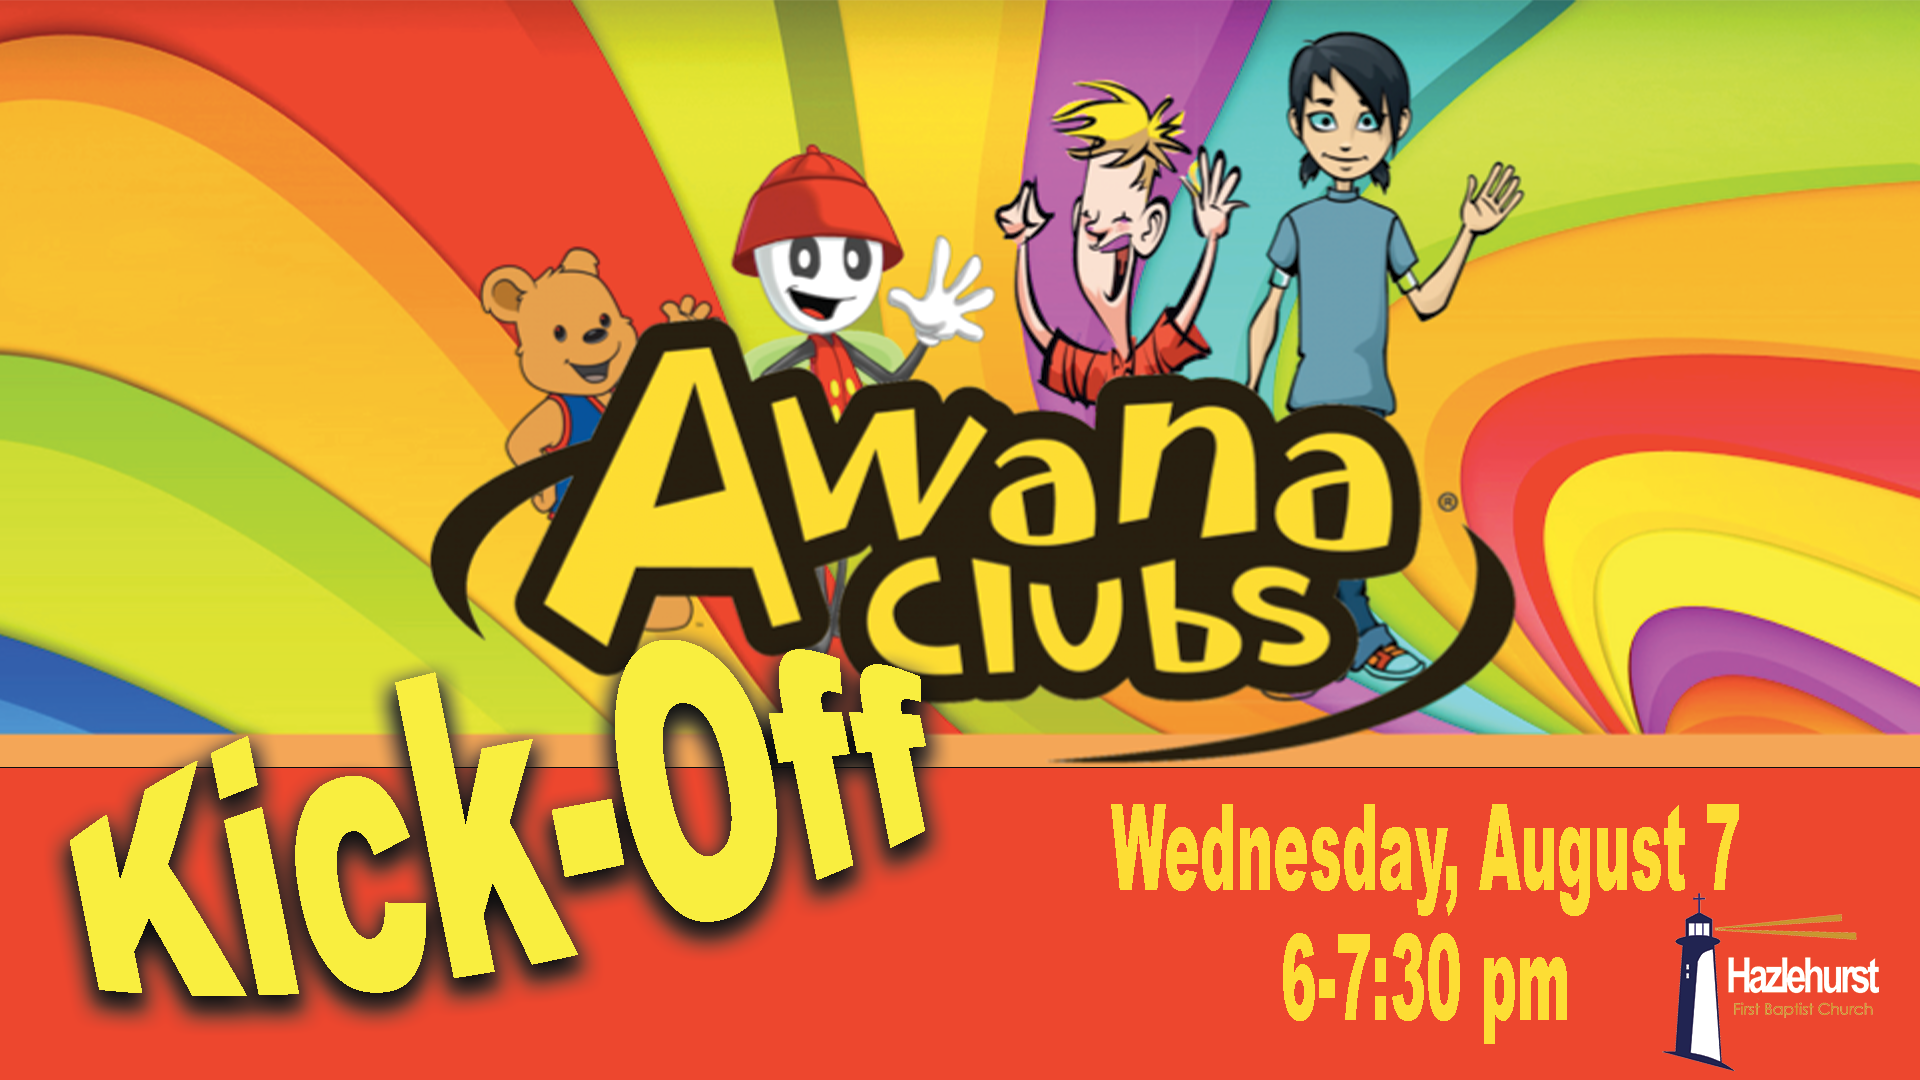 Awana equips churches with Biblical evangelism and discipleship so that today's children may become tomorrow's Christian leaders. - FOR CHILDREN WHO ARE BETWEEN THE AGES OF 2 YEARS THROUGH 5TH GRADE.